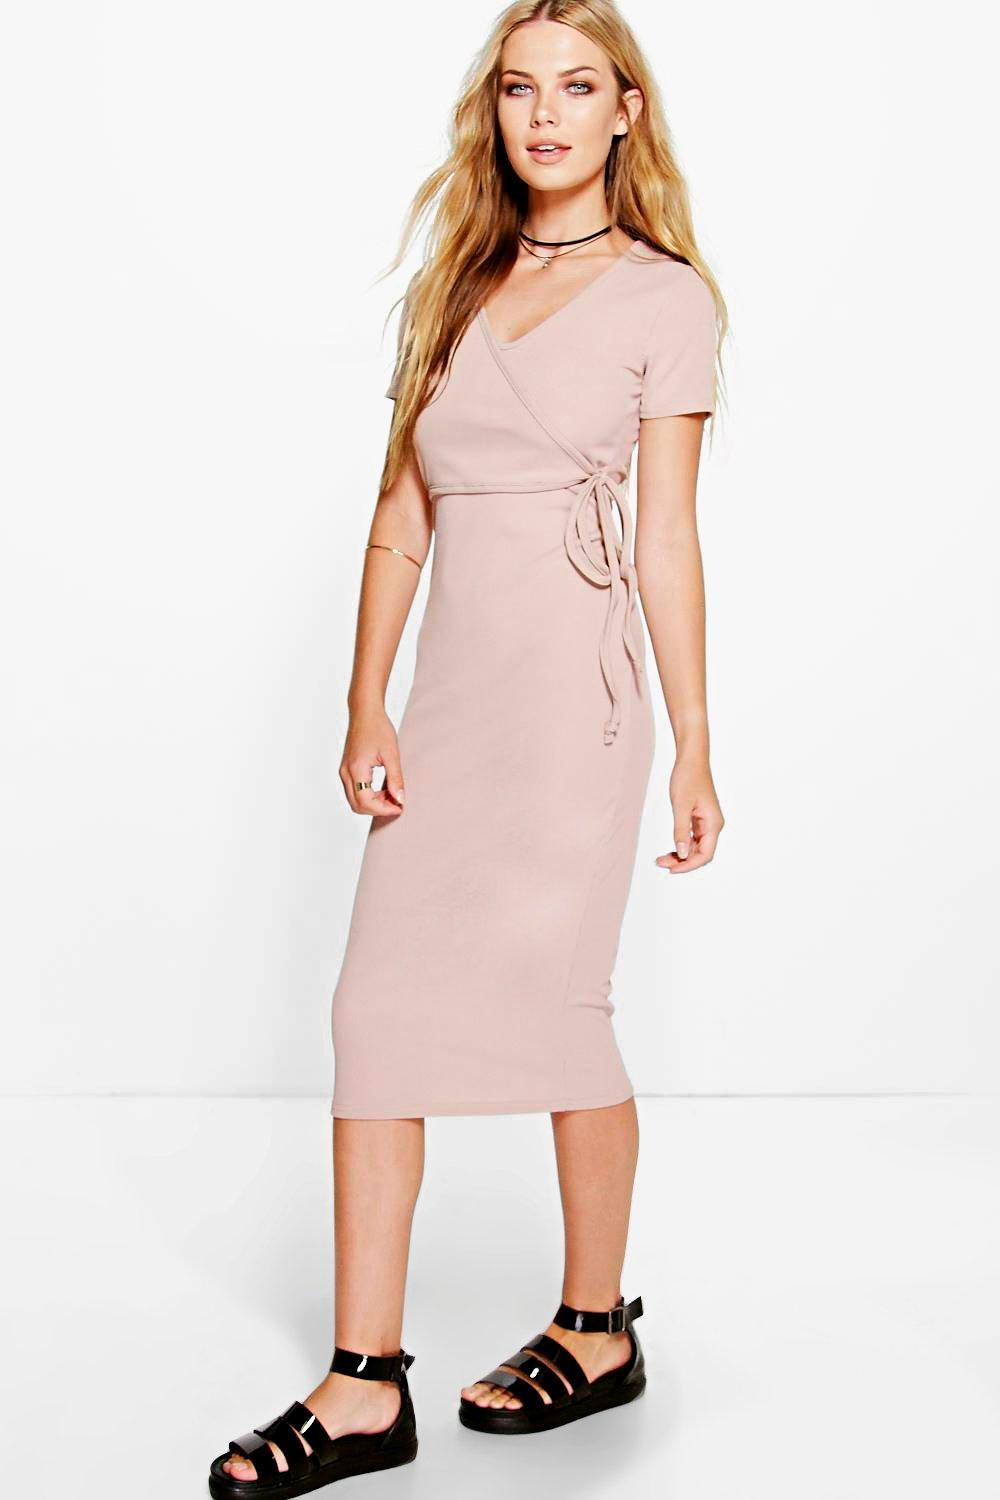 Ribbed Cap Sleeve Midi Dress Sand - style: faux wrap/wrap; length: below the knee; neckline: v-neck; pattern: plain; waist detail: belted waist/tie at waist/drawstring; predominant colour: blush; occasions: evening; fit: body skimming; fibres: viscose/rayon - stretch; sleeve length: short sleeve; sleeve style: standard; pattern type: fabric; texture group: jersey - stretchy/drapey; season: s/s 2016; wardrobe: event